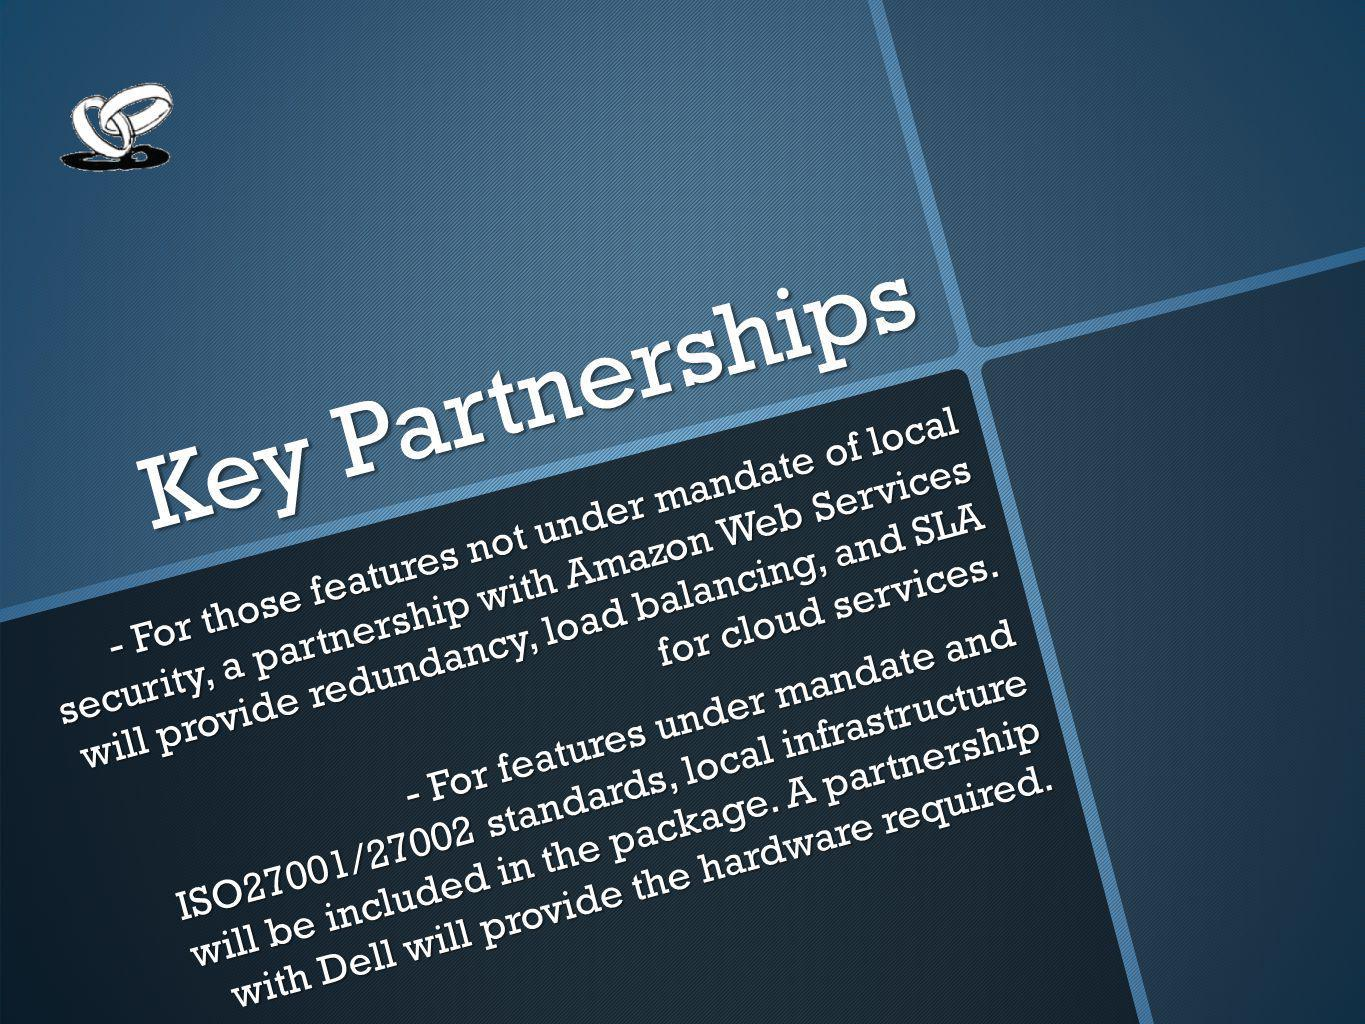 Key Partnerships - For those features not under mandate of local security, a partnership with Amazon Web Services will provide redundancy, load balancing, and SLA for cloud services.